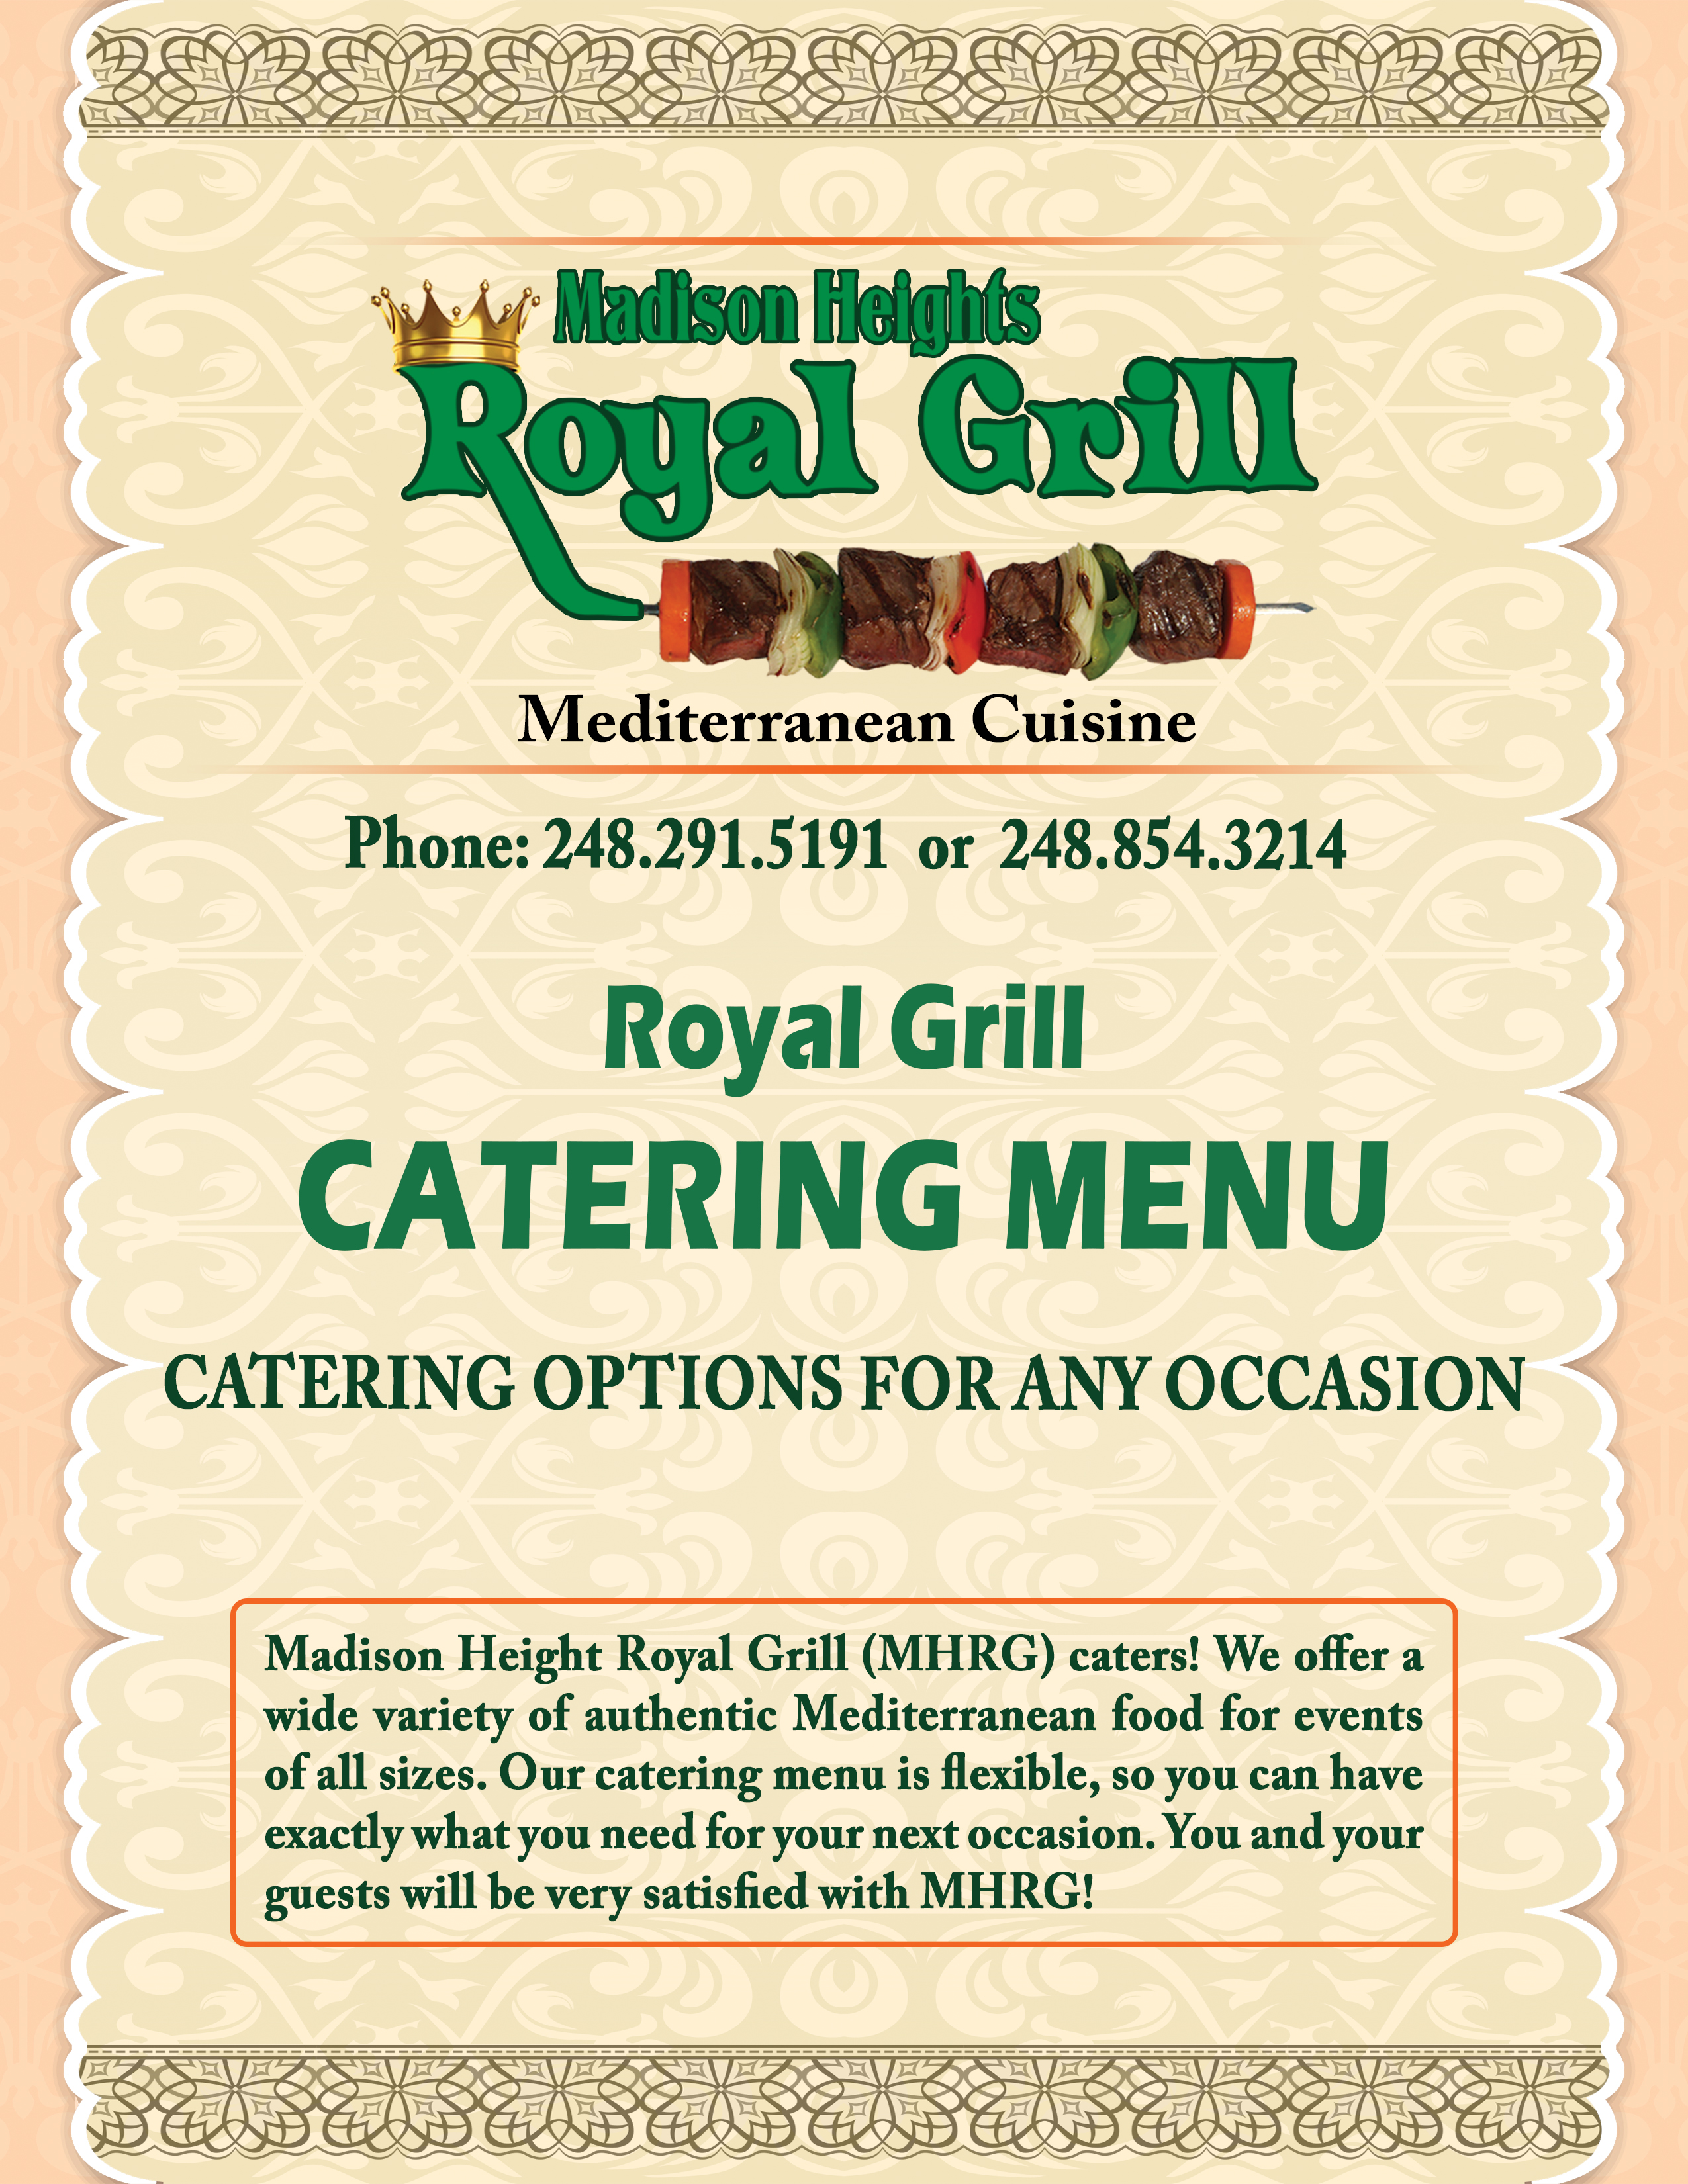 RG_Catering_M_WP1